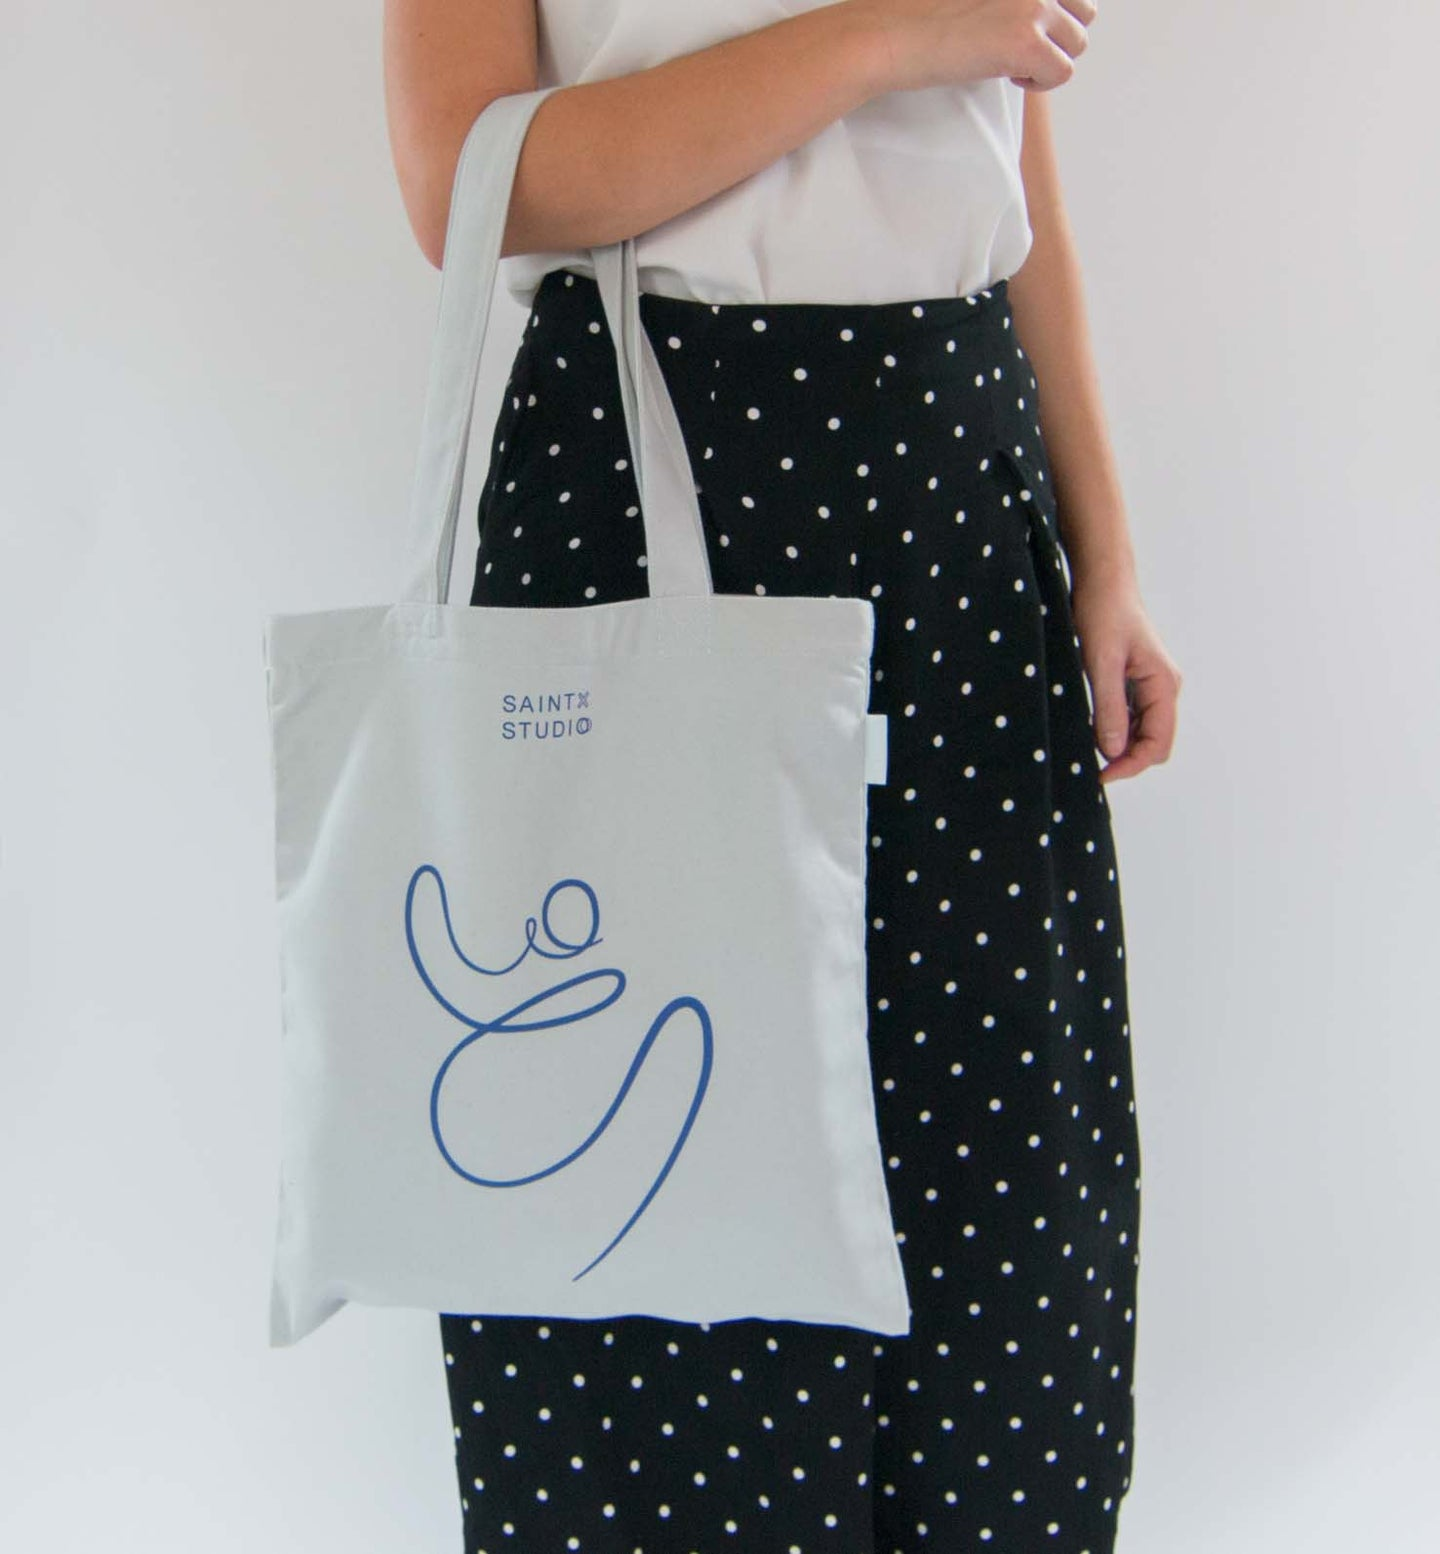 af1c7e368 ... Carry Tote | One Line Lady Canvas Tote Bag SAINTX STUDIO ...